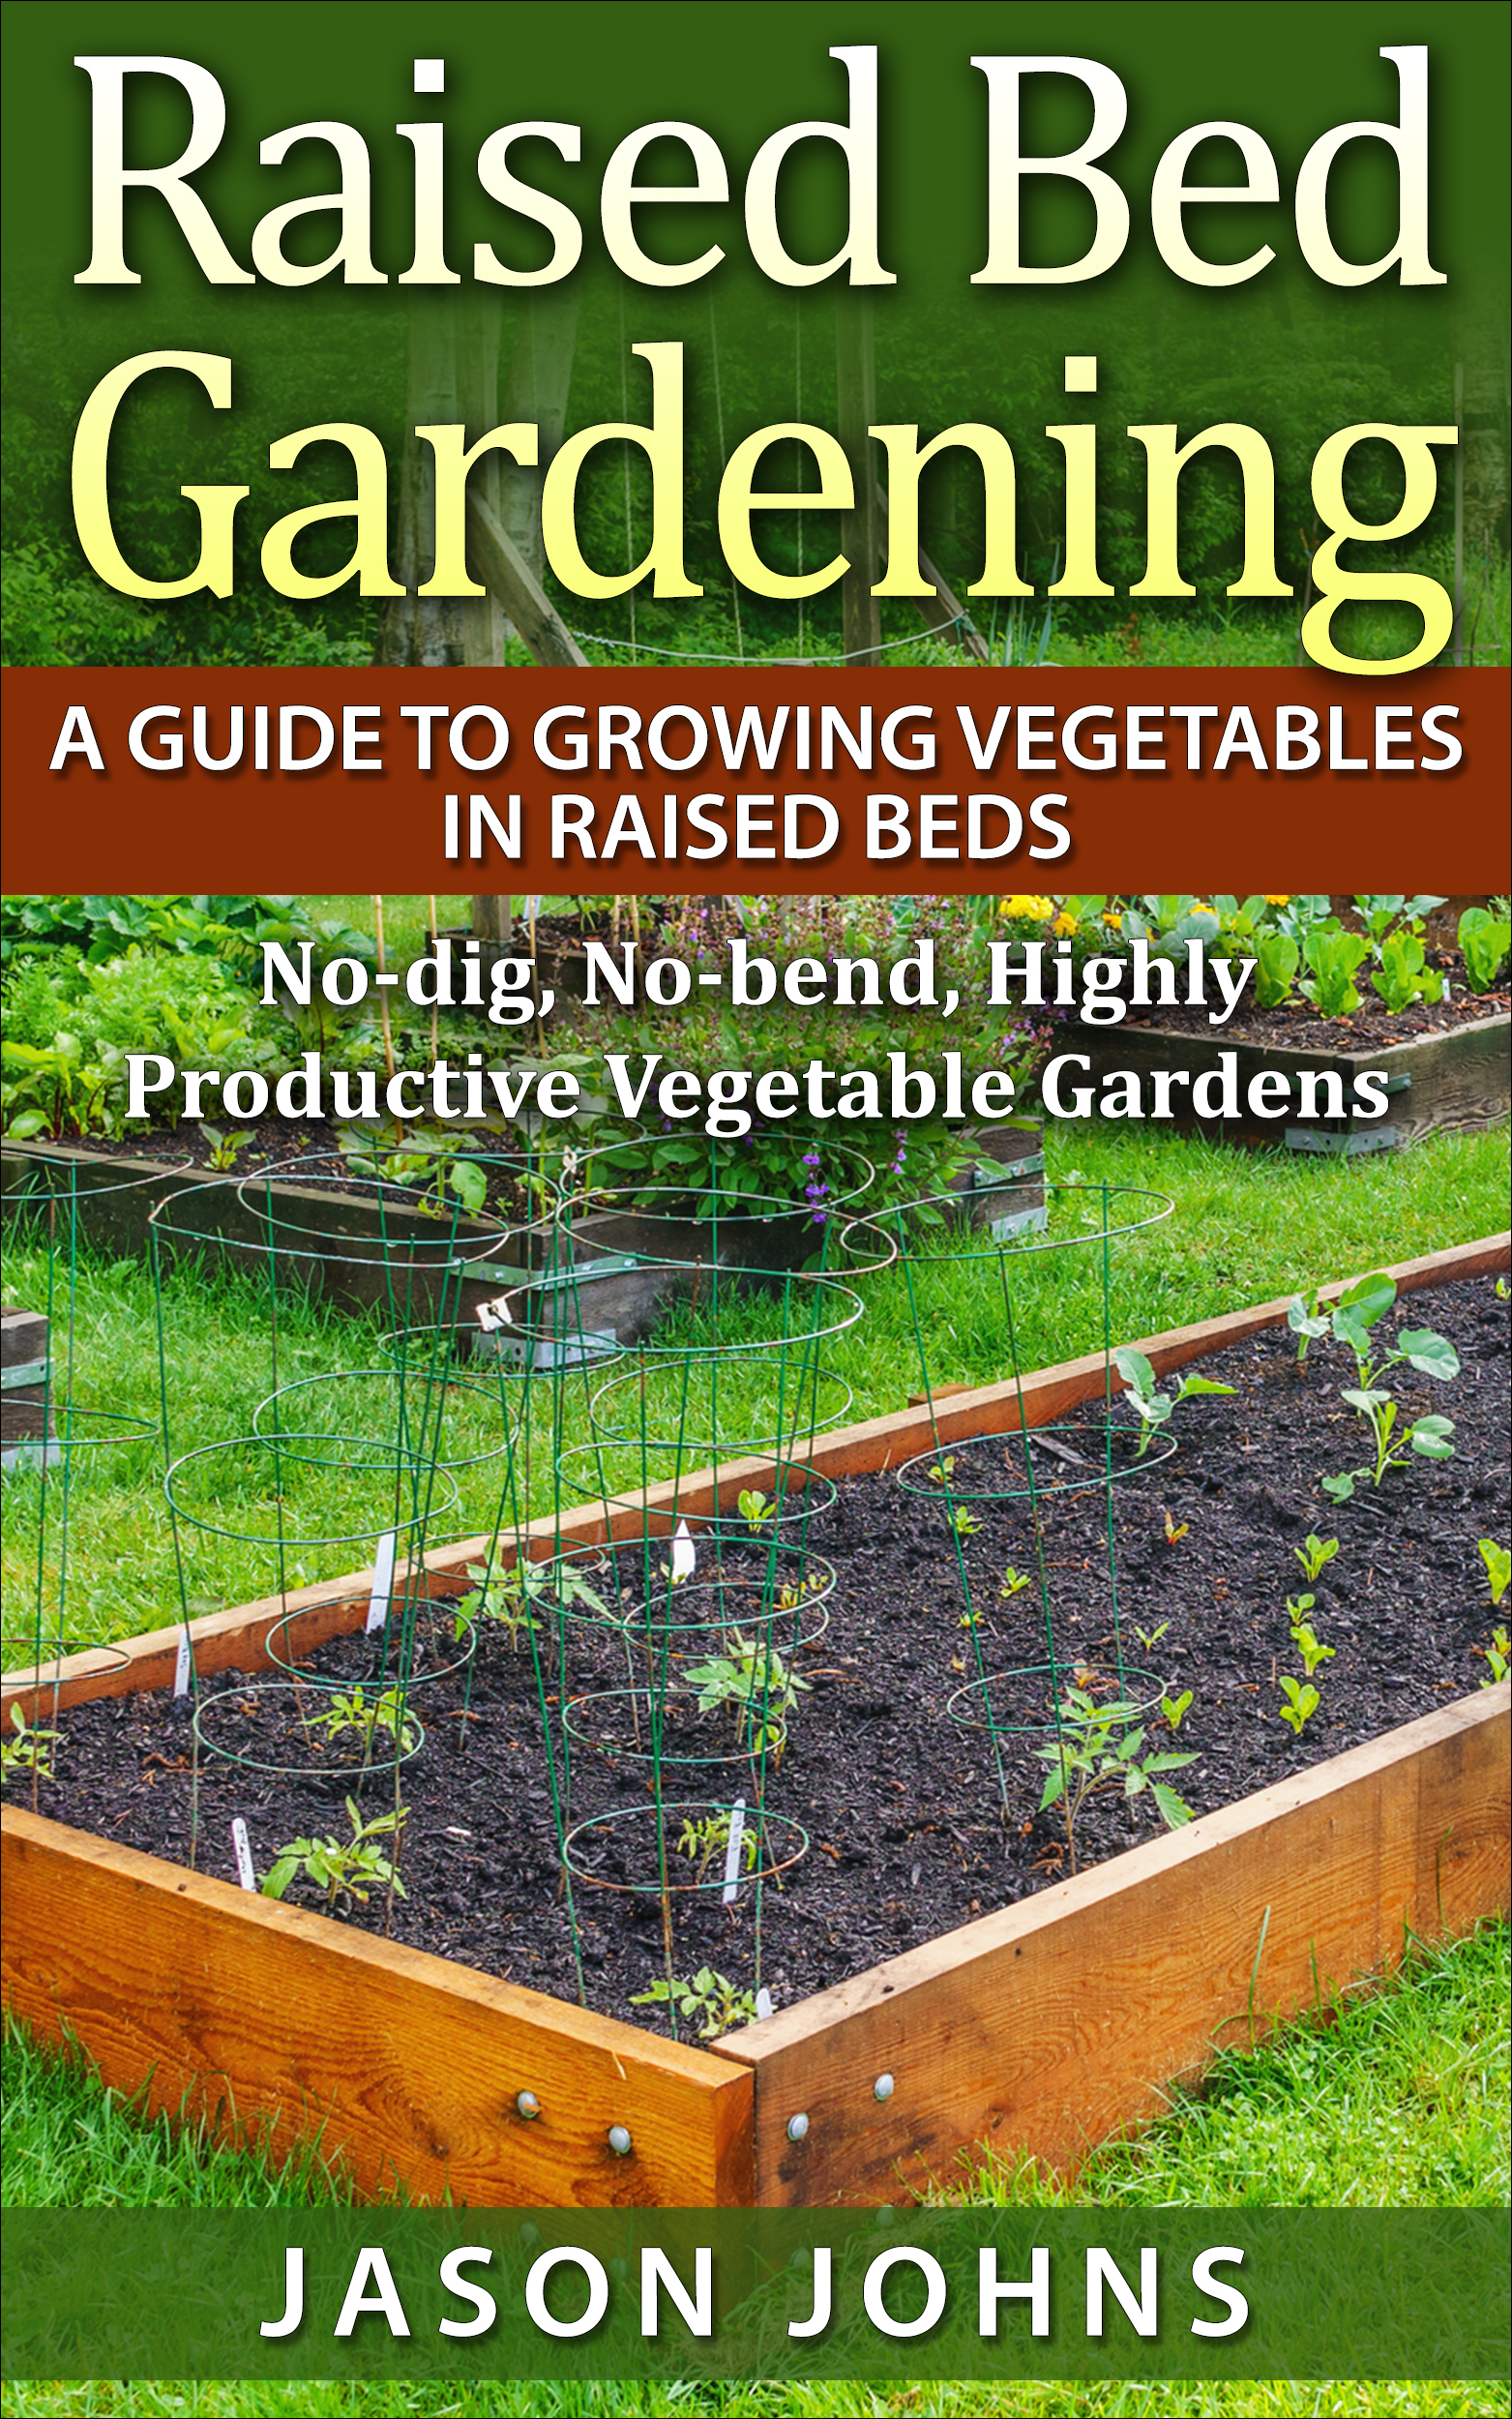 Raised Bed Gardening A Guide To Growing Vegetables In Beds No Dig Bend Highly Ive Vegetable Gardens